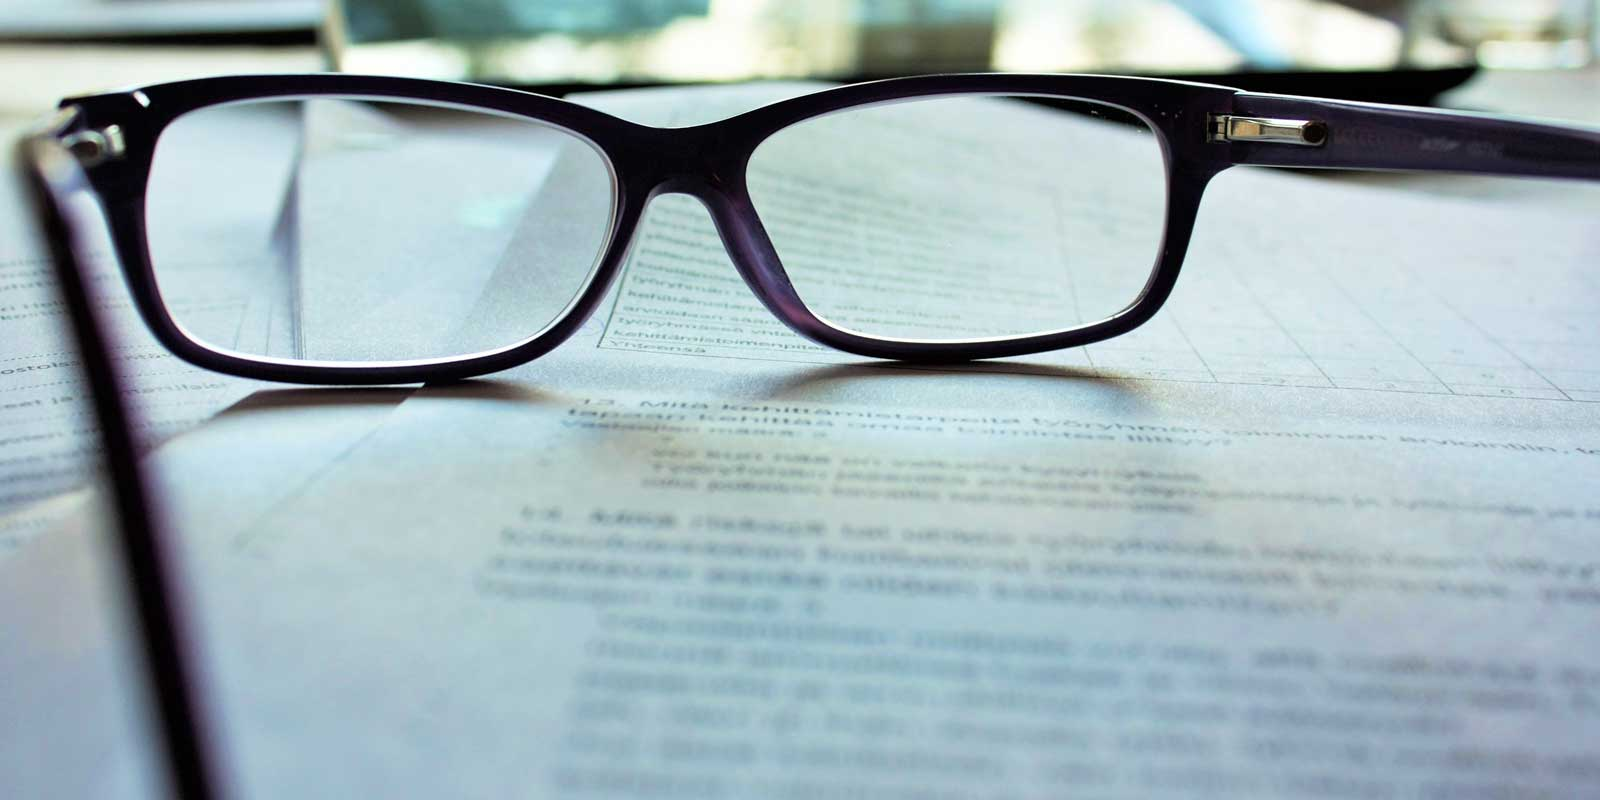 Closeup of eyeglasses sitting on top of a printed piece of paper.